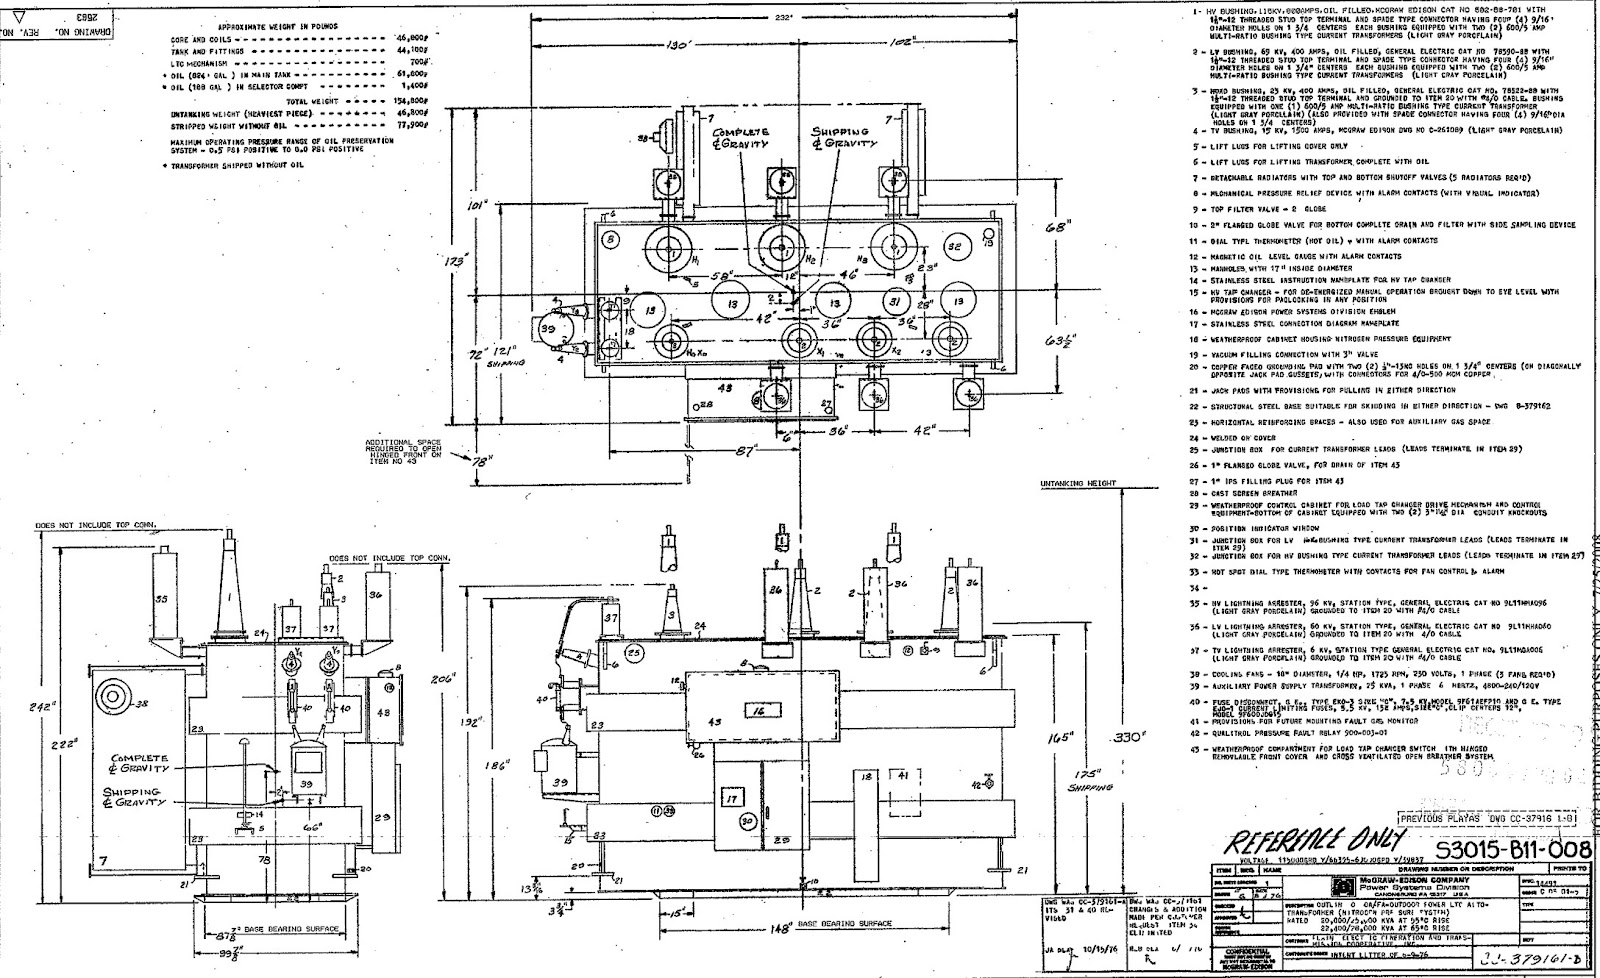 75 kva transformer wiring diagram fender strat 3 way switch collection